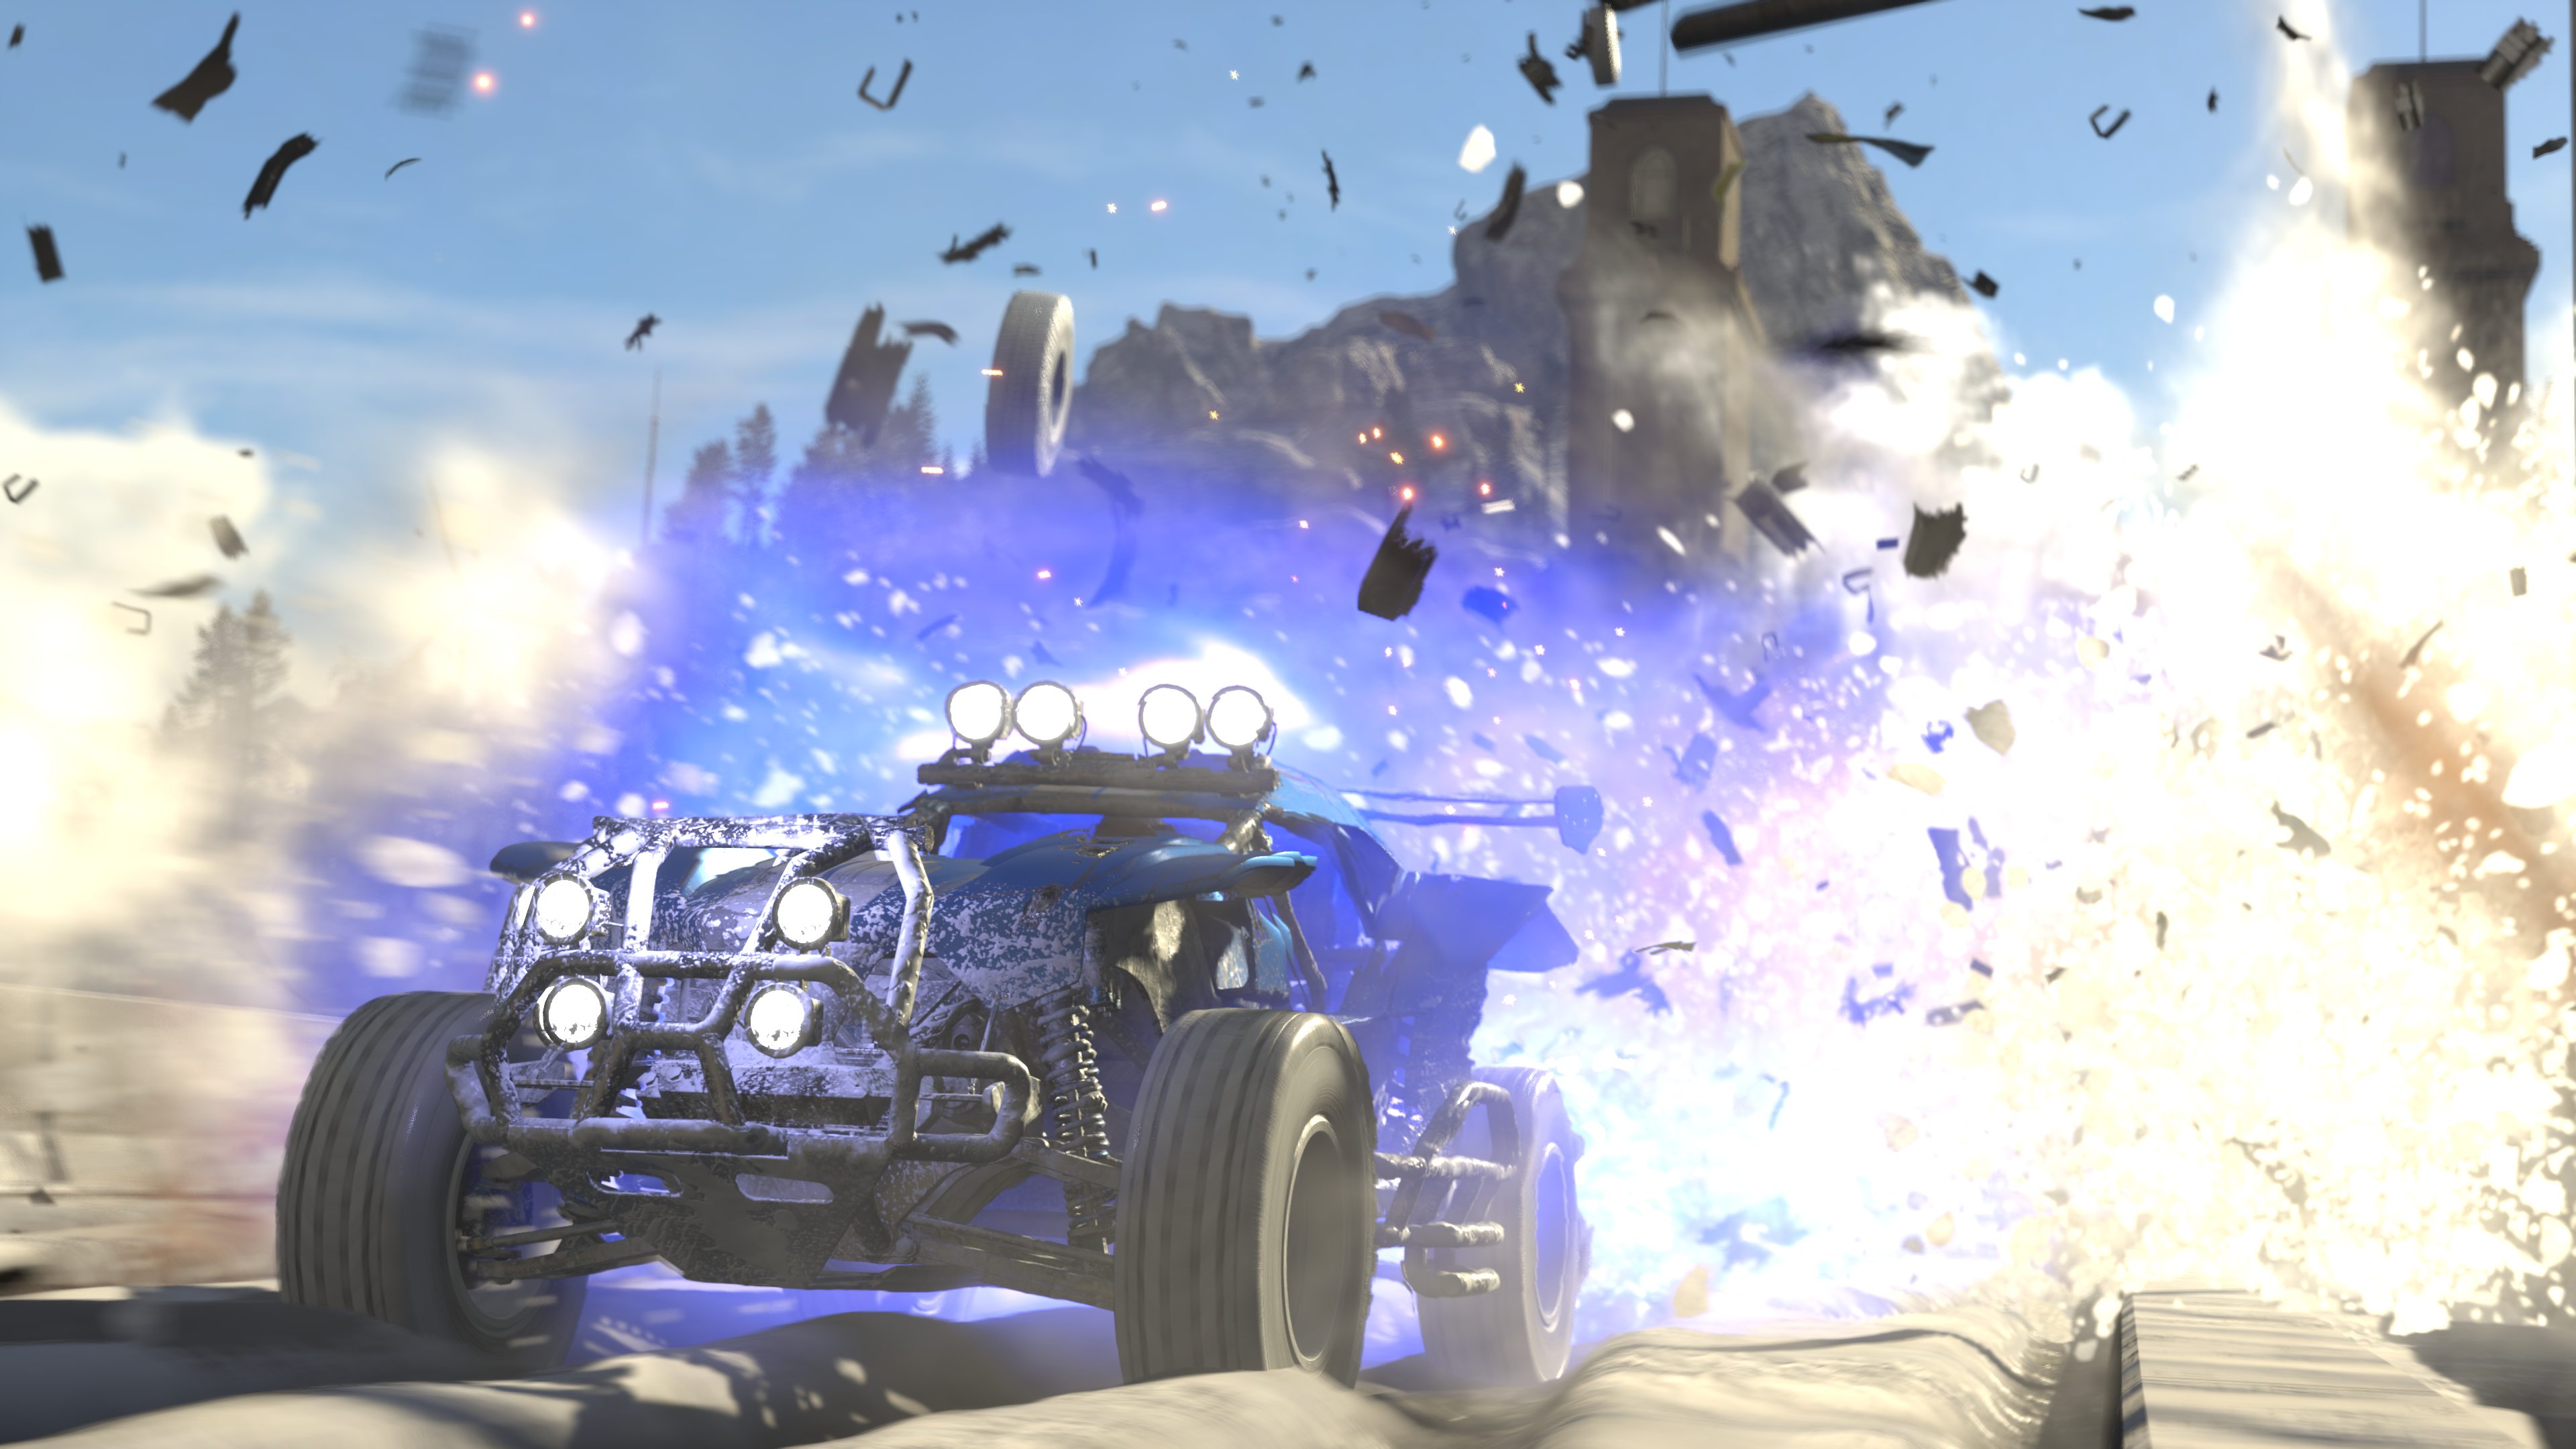 New trailer released for Onrush ahead of June release